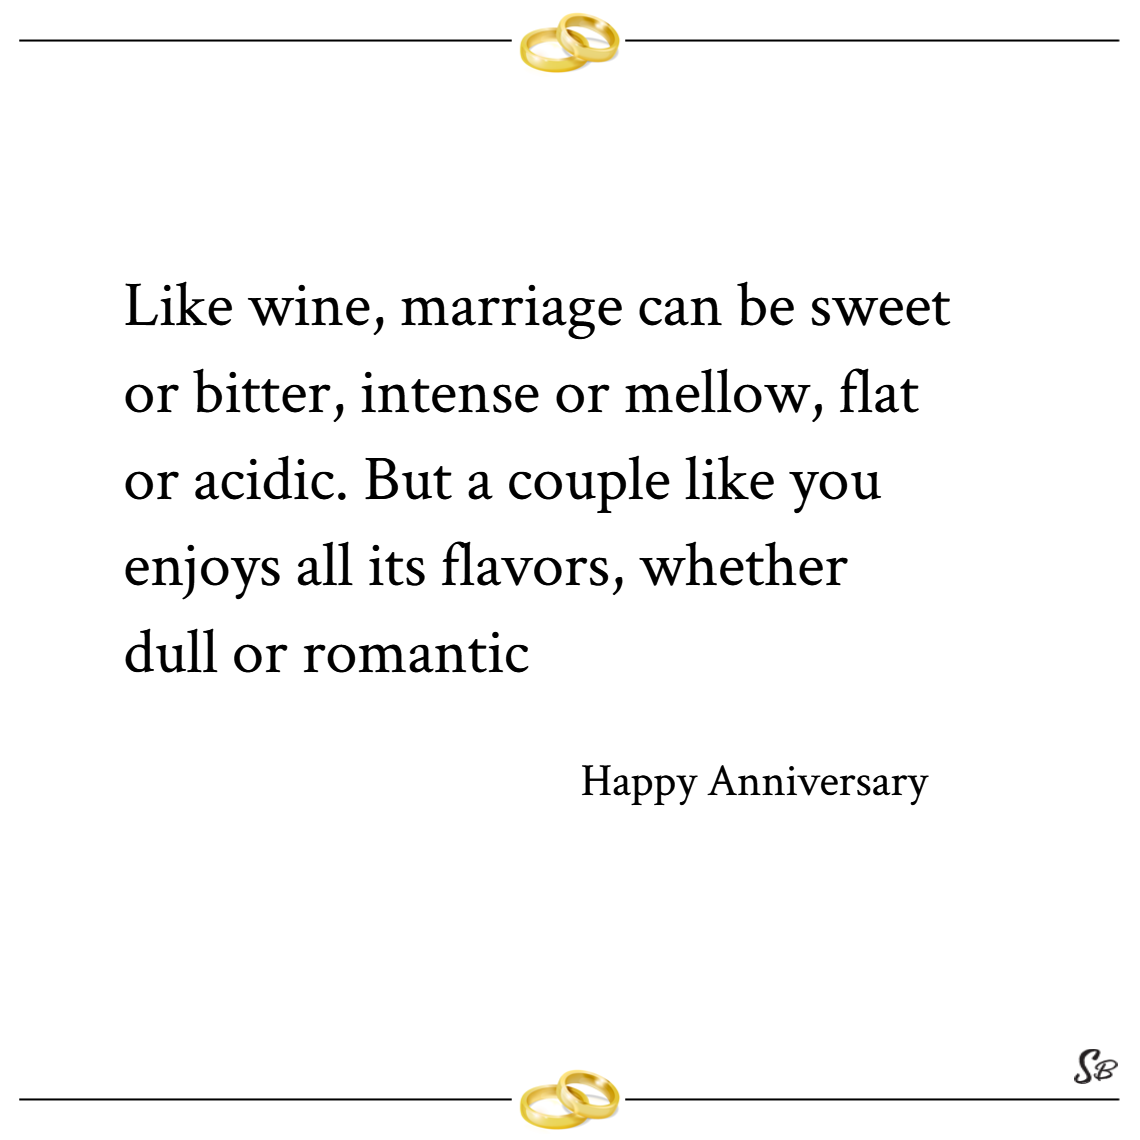 Like wine, marriage can be sweet or bitter, intense or mellow, flat or acidic. but a couple like you enjoys all its flavors, whether dull or romantic